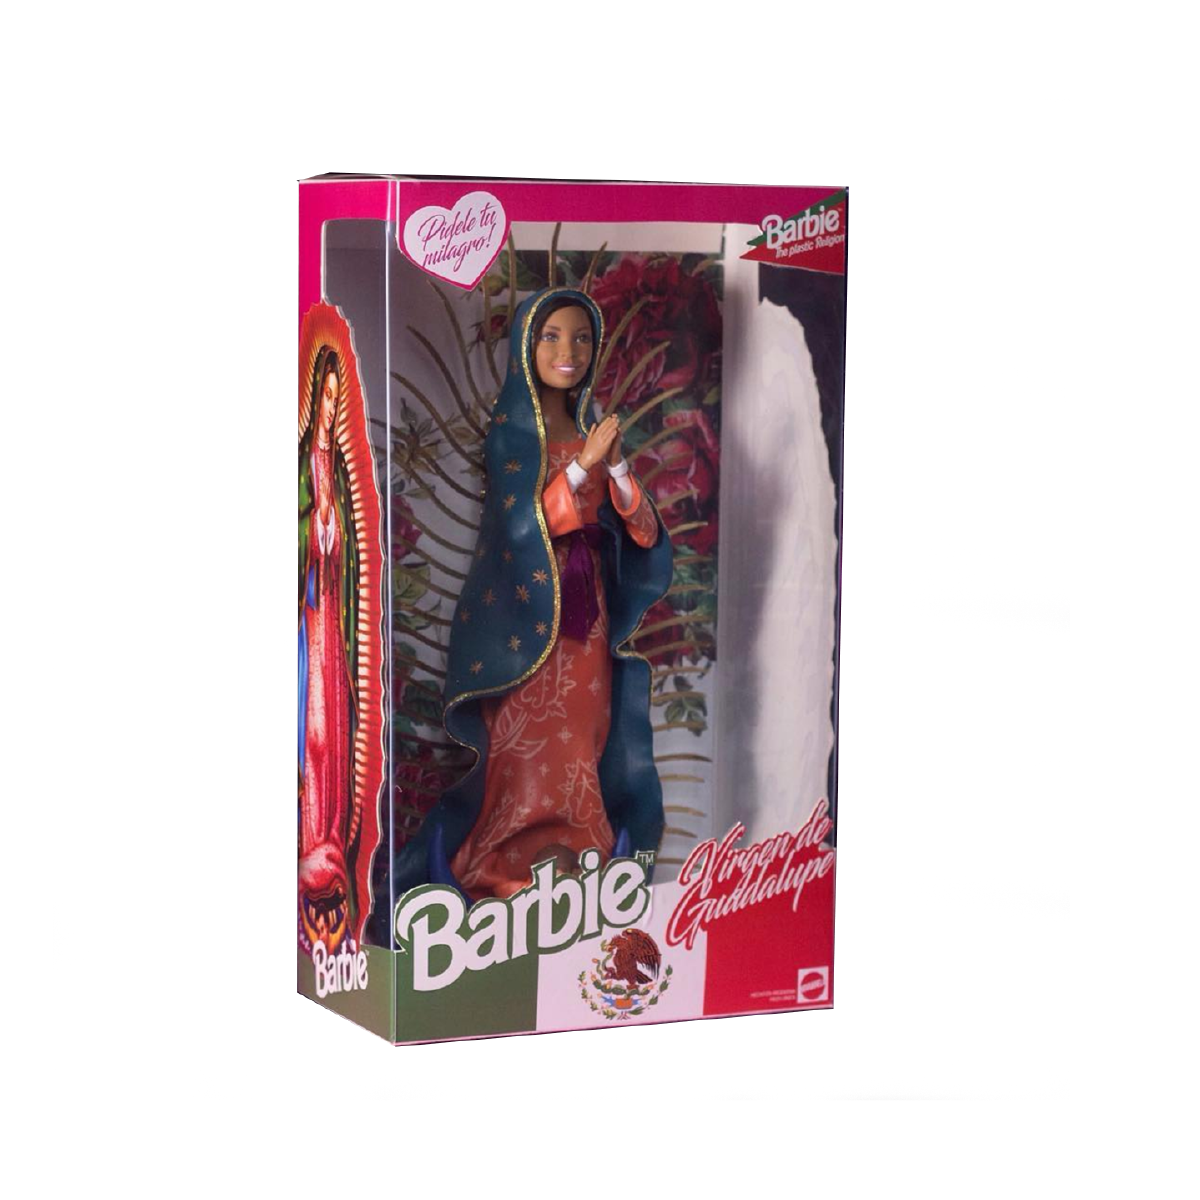 review-body-barbietheplasticreligion-02.png